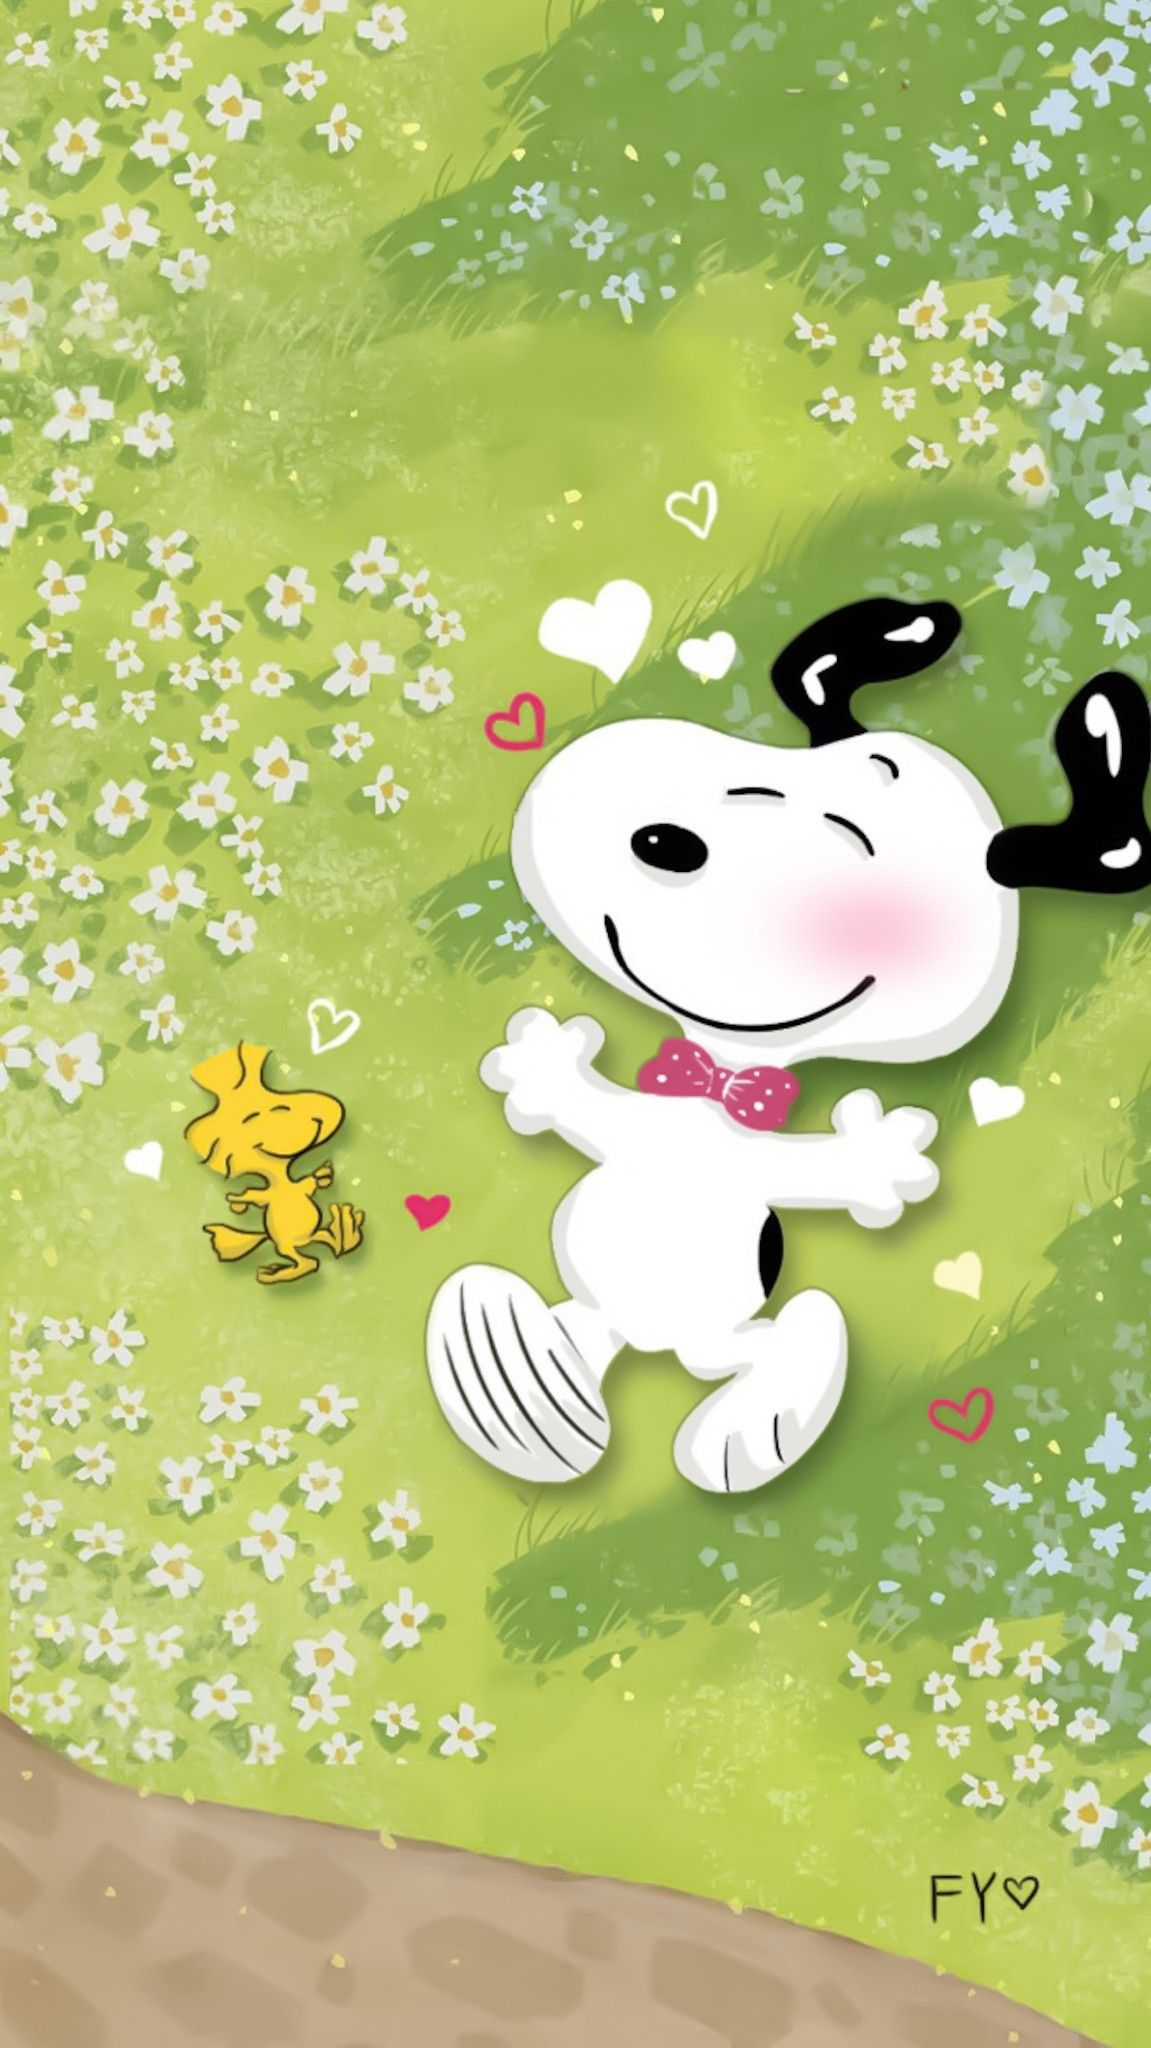 Pin By 由美子 古郡 On Snoopy In Snoopy Wallpaper Snoopy Pictures Snoopy Love